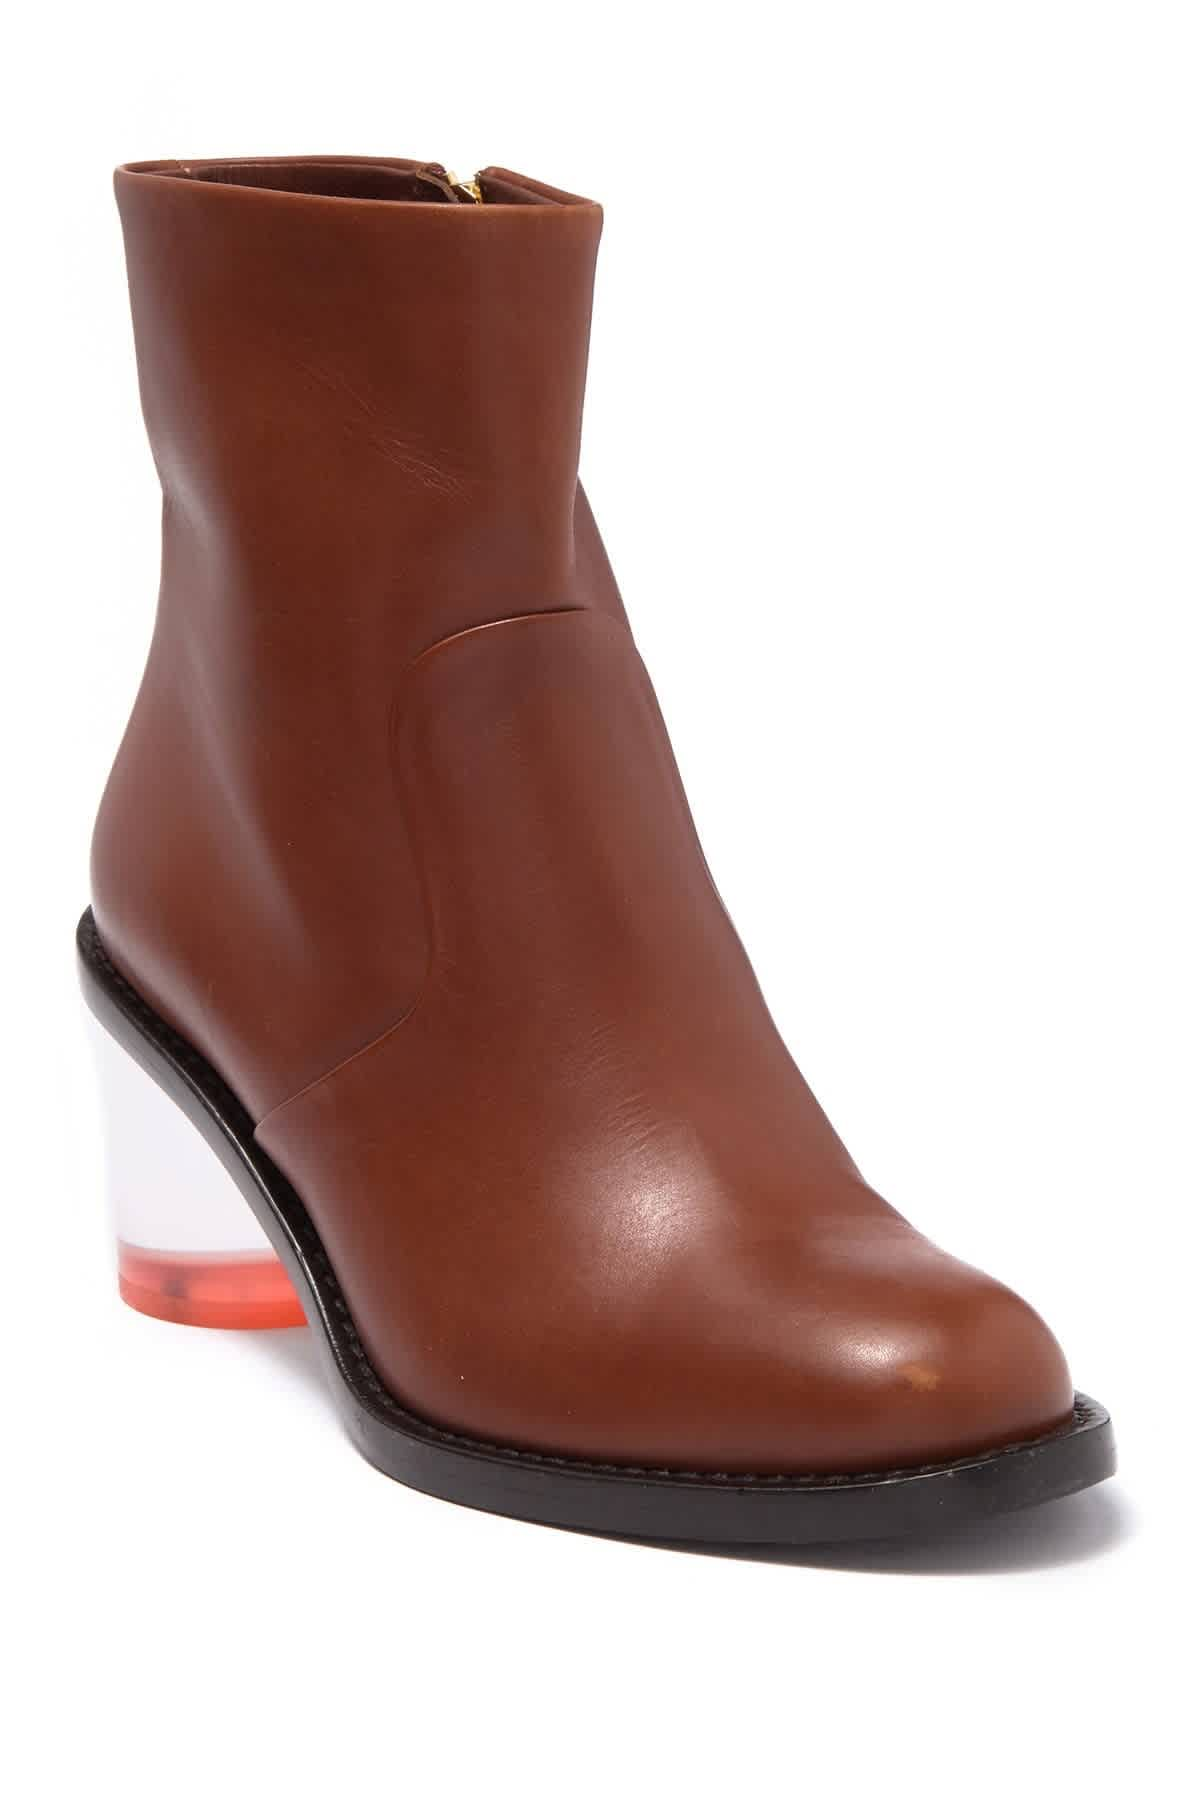 Burberry Westella Two-tone Leather Block-heel Boots In Cognac In Brown,two Tone